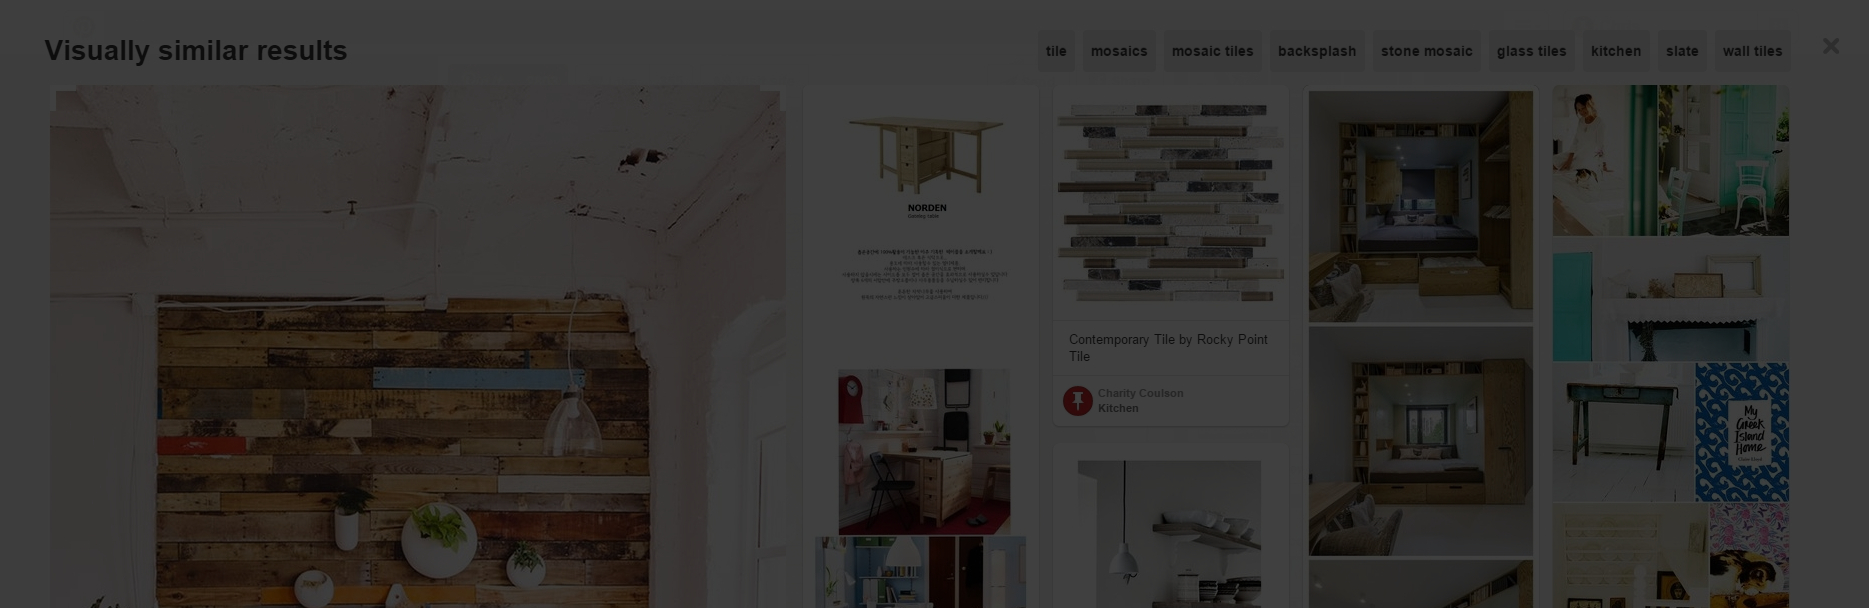 Pinterest Visual Search Implications for Marketers & How it Works